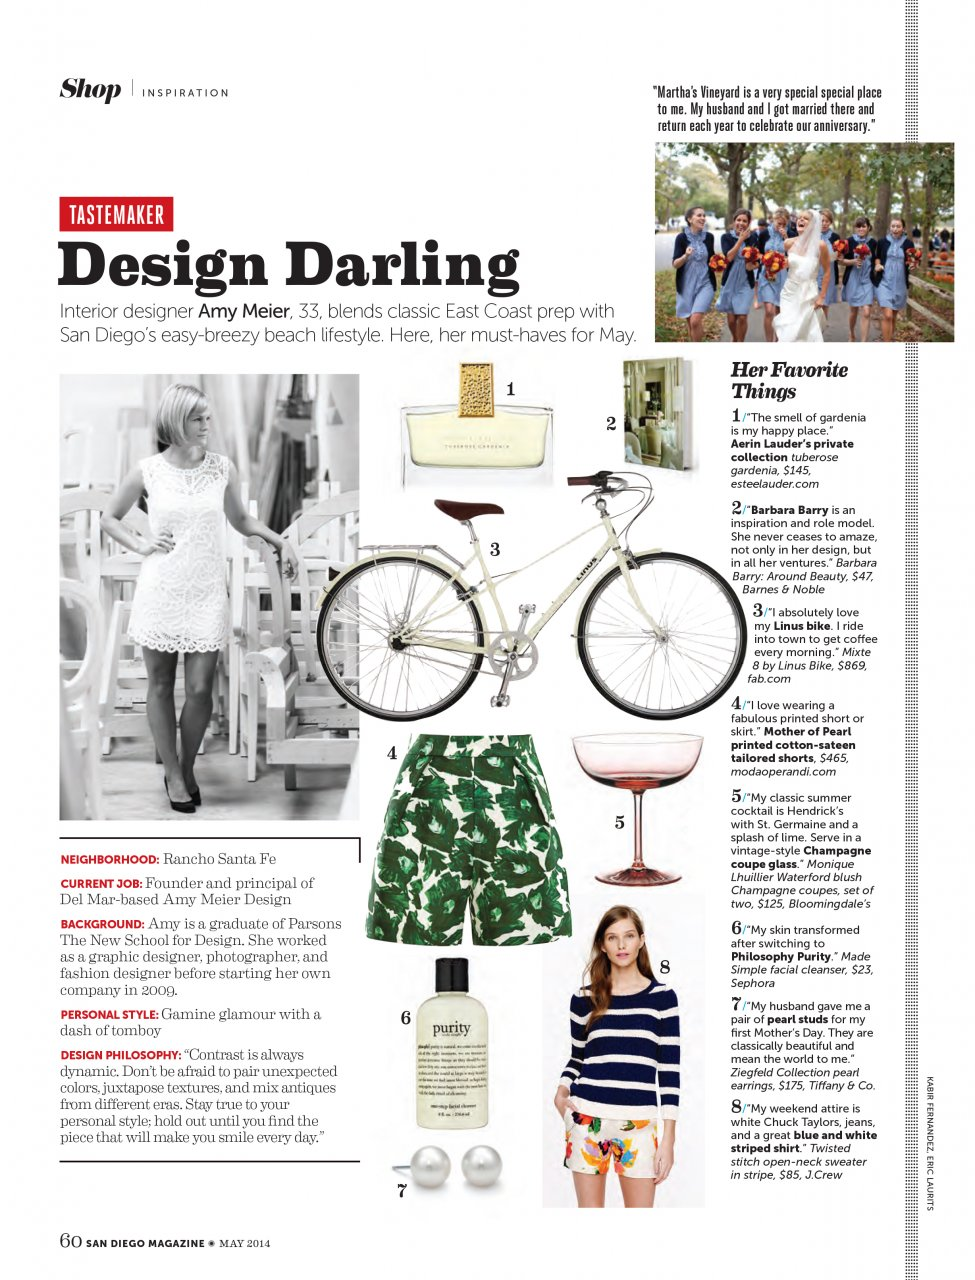 Thank You: San Diego Magazine — Amy Meier Design